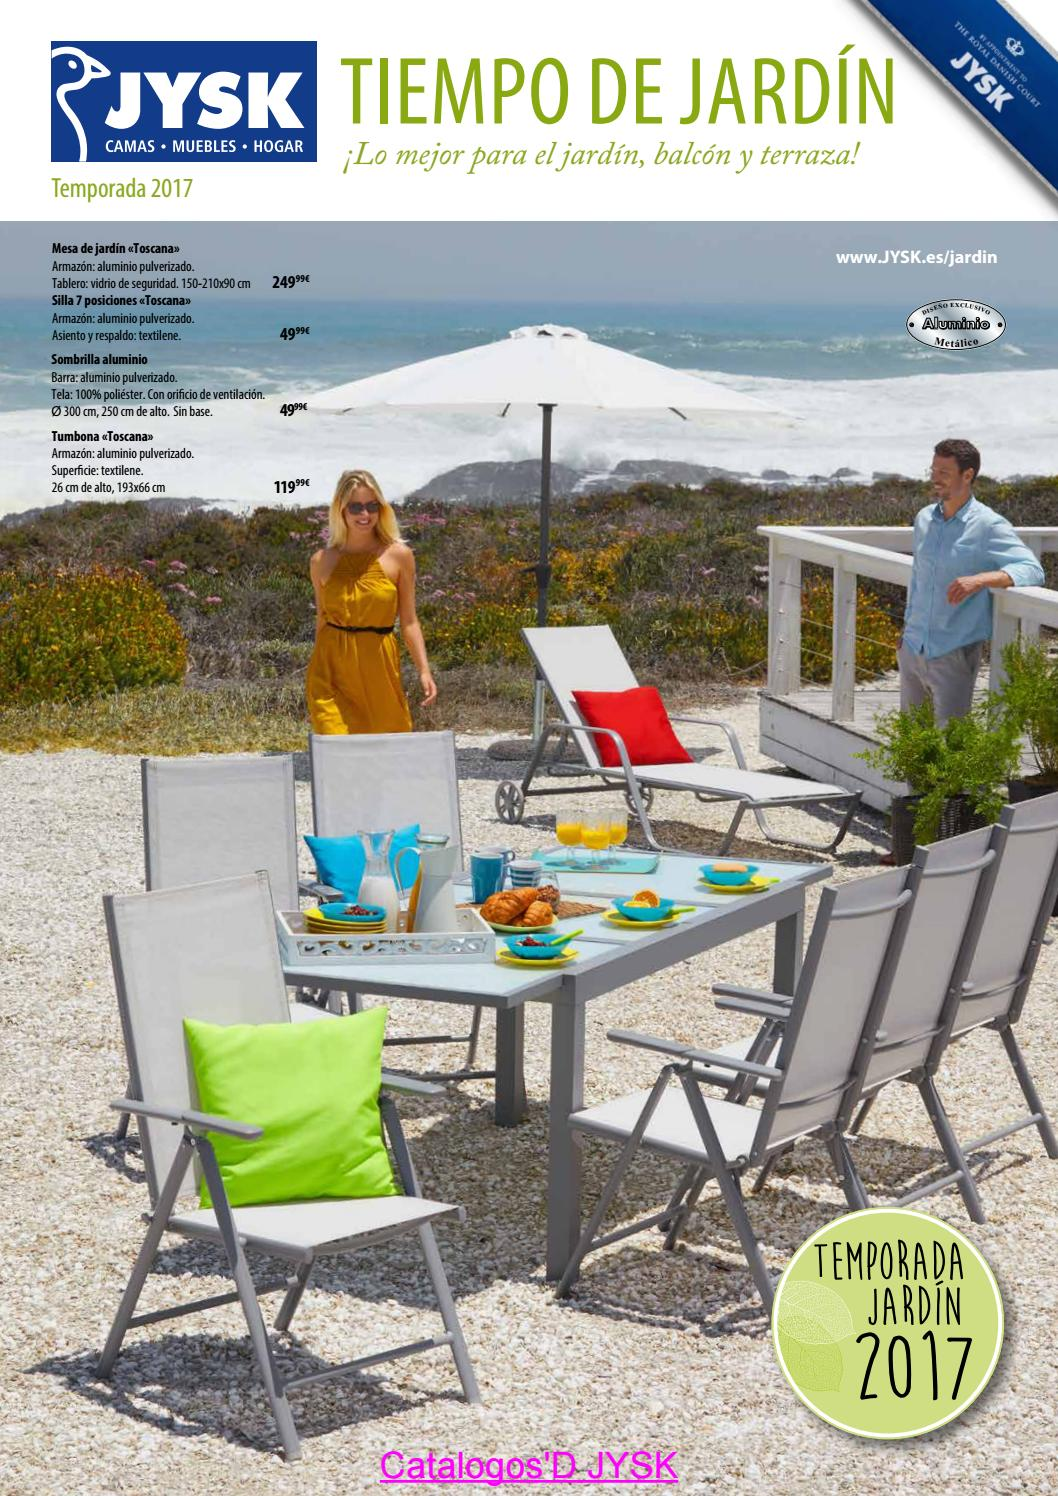 Catalogosd jysk jardin 17 by Revistas En linea - issuu